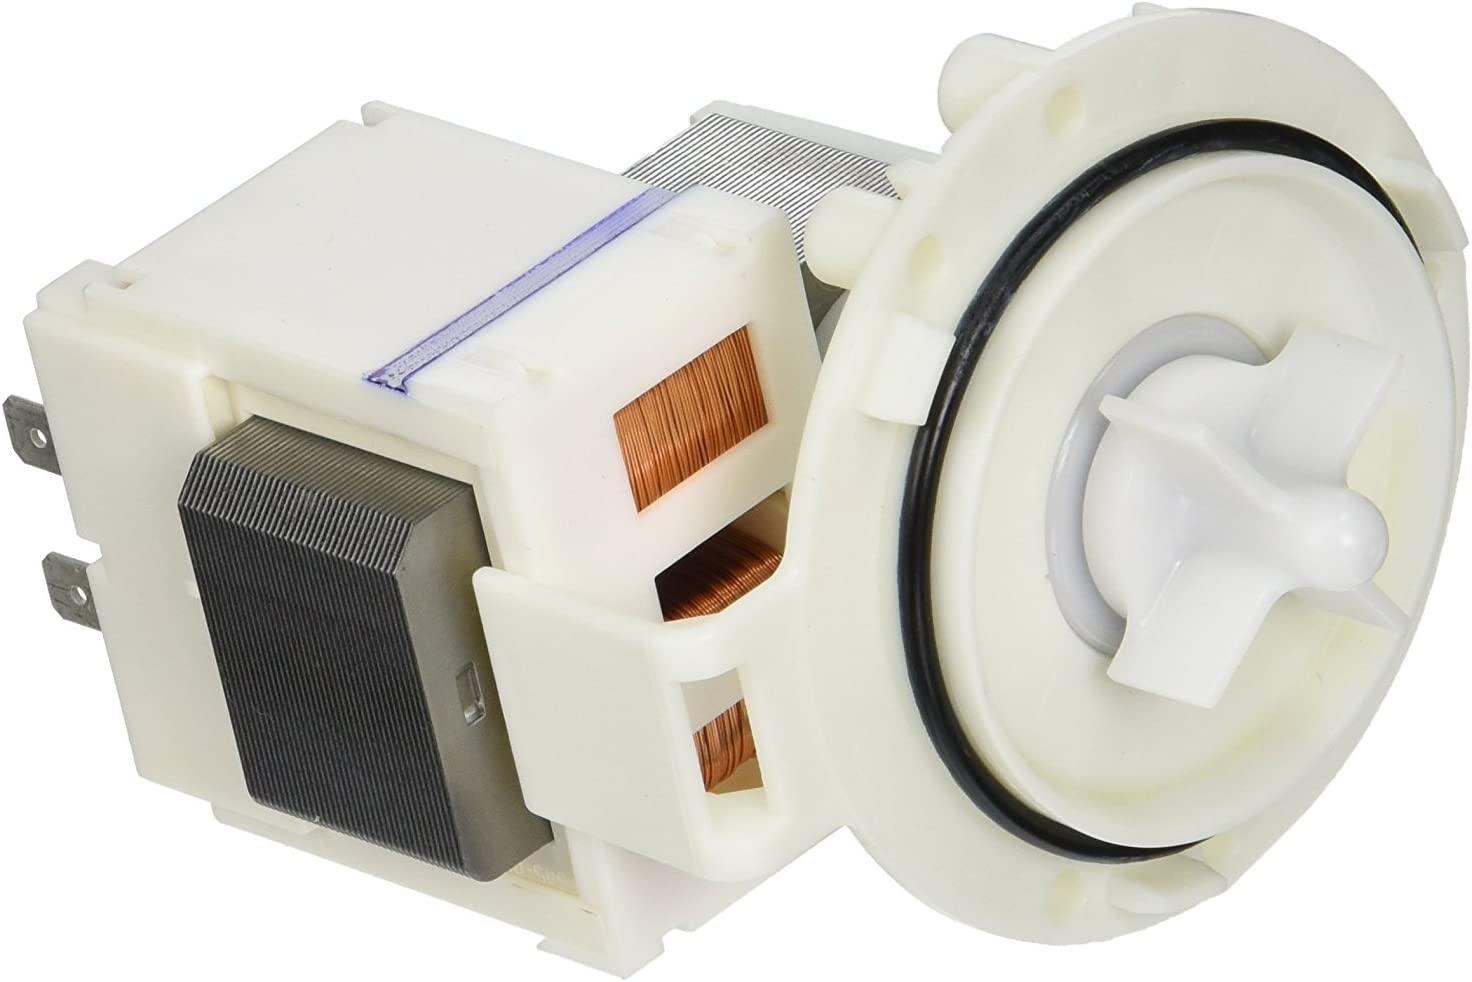 OEM Mania Authorized OEM Factory Replacement Drain Pump 4681EA2002H PS3523285 AP4438603 for Dishwasher